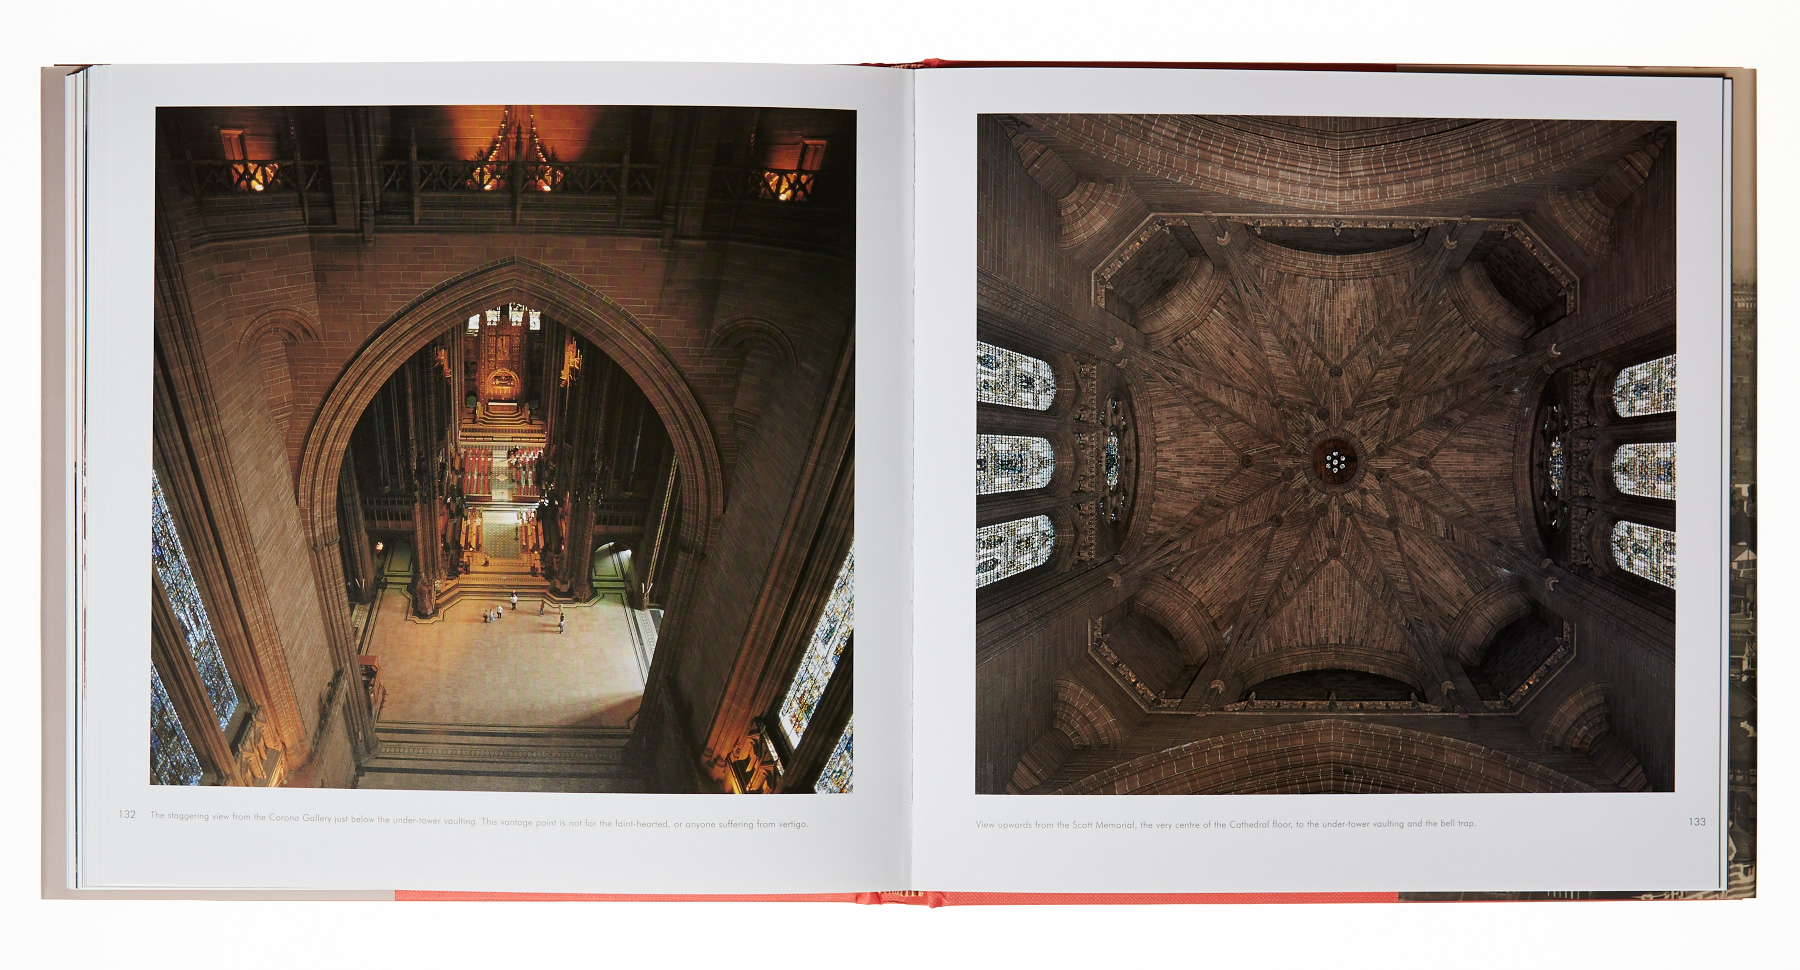 liverpool-cathedral-book-page-132.jpg